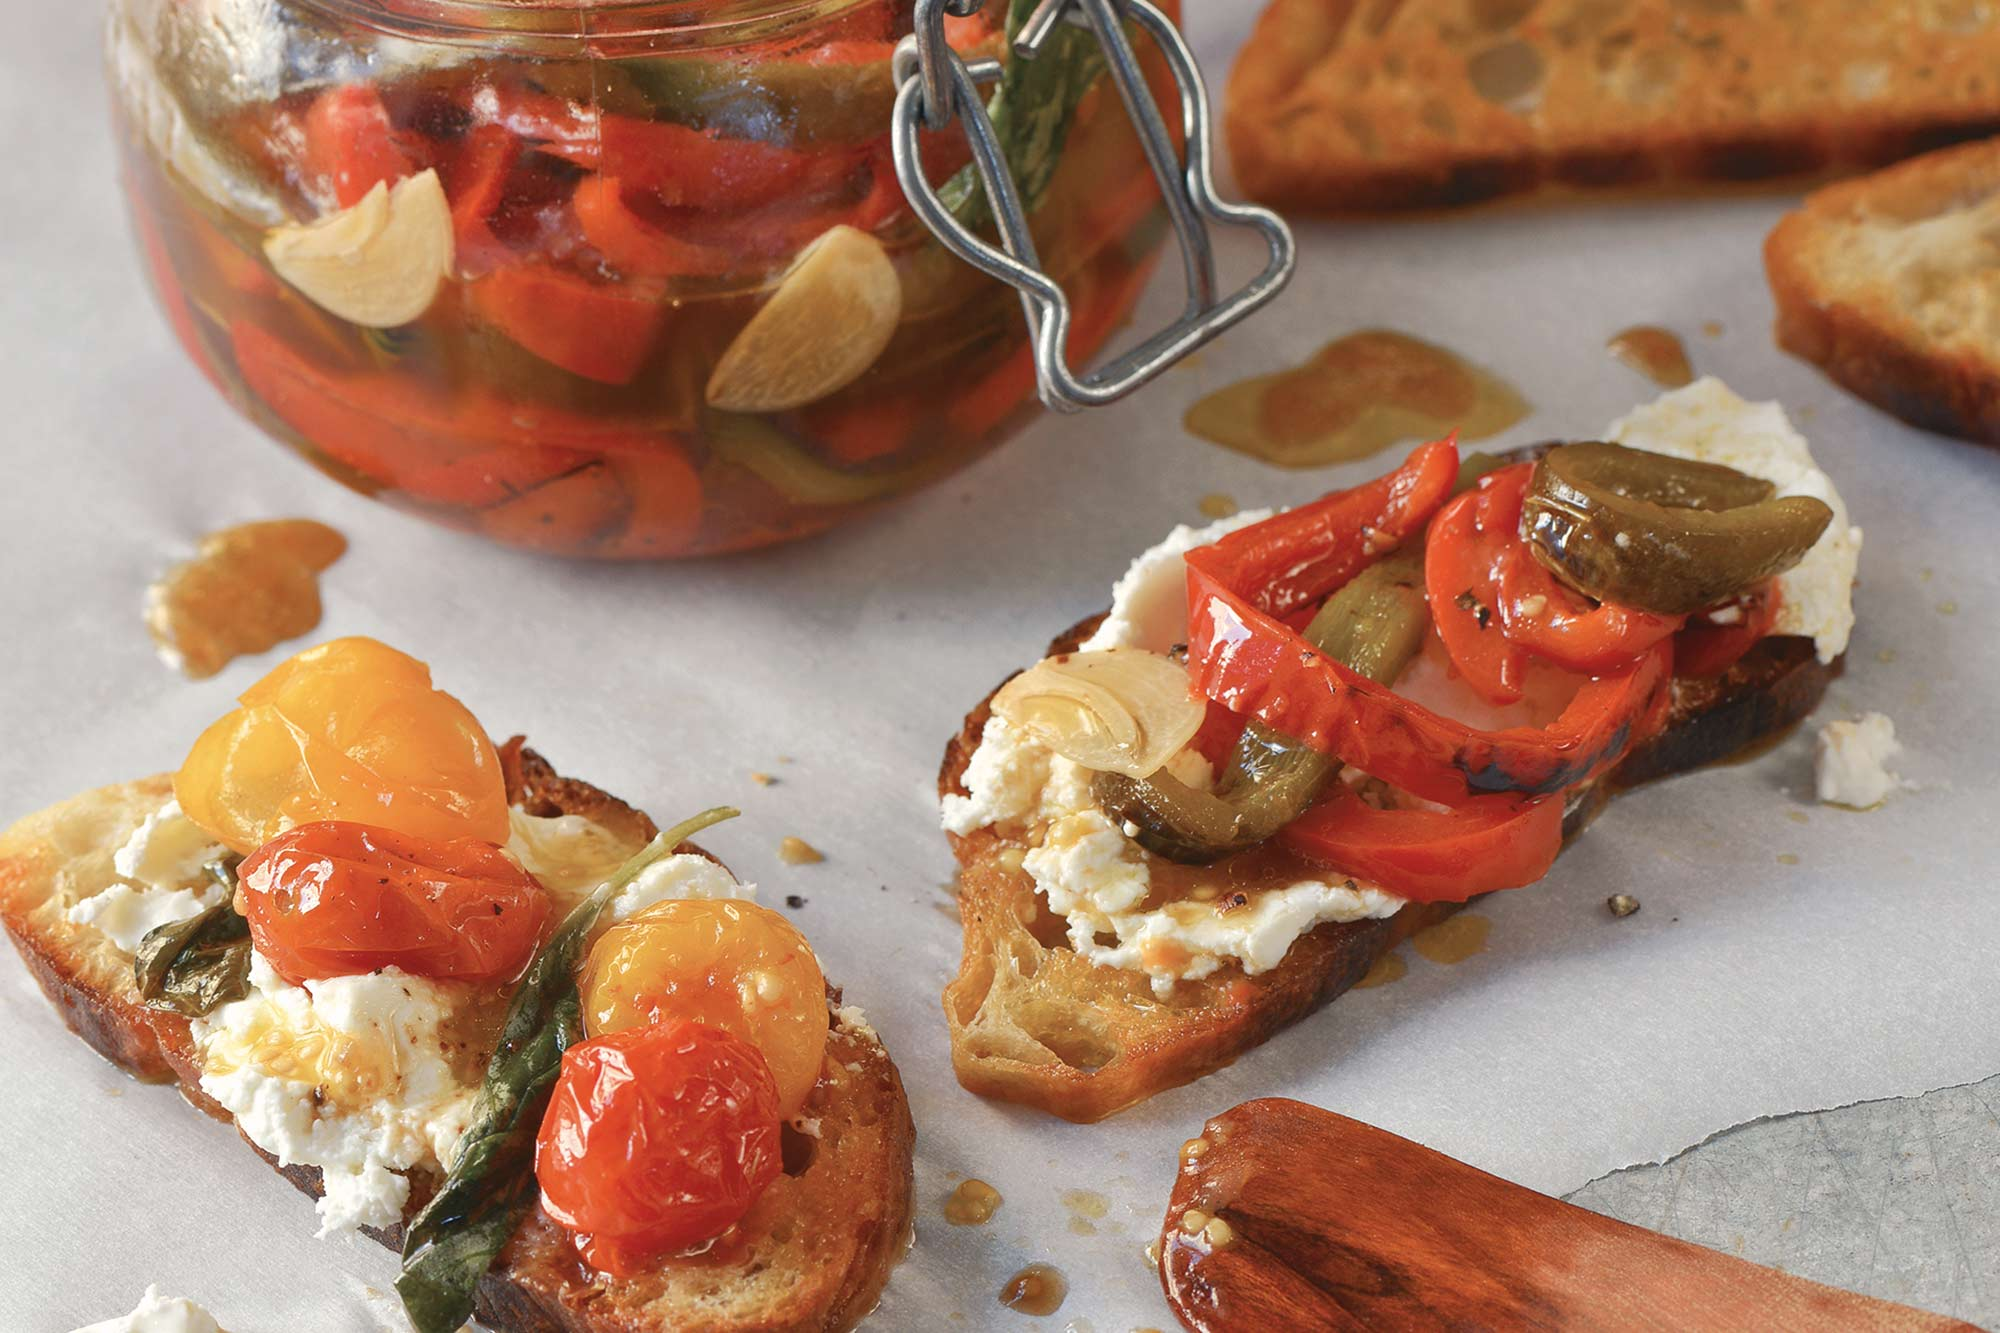 Marinated Basil and Garlic Peppers on Goat Cheese Tartines